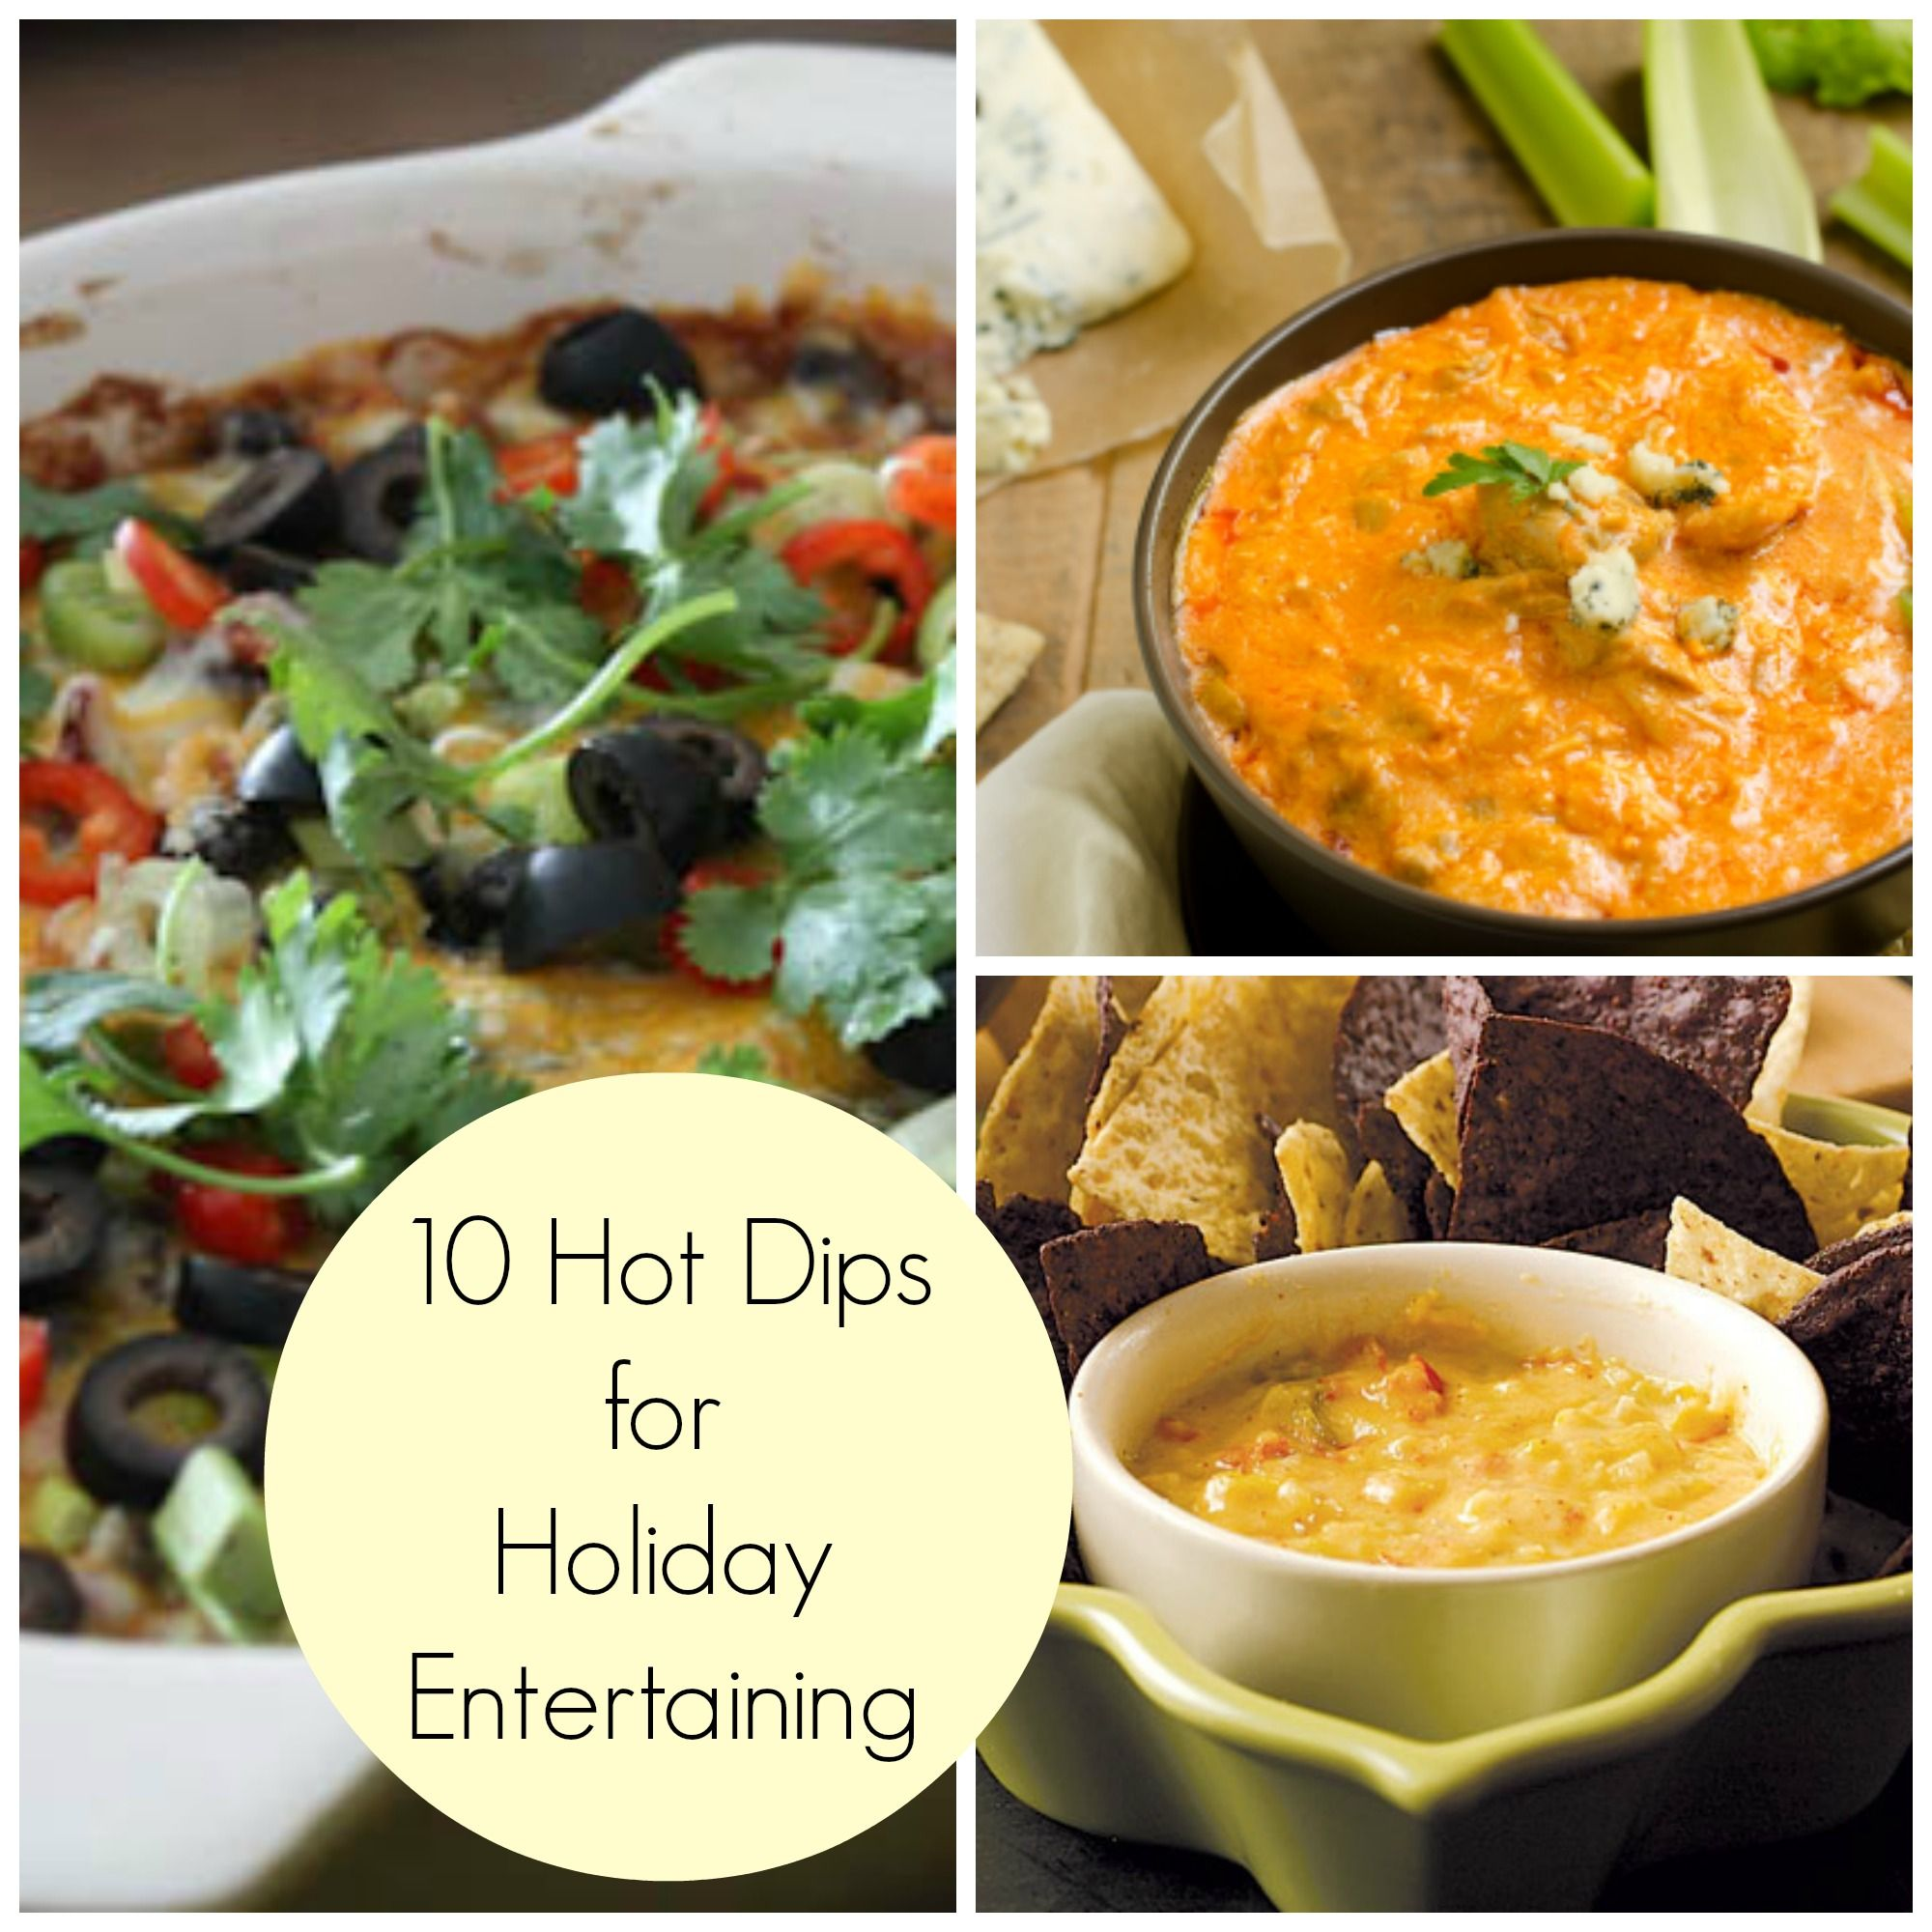 Easy Appetizers And Dips: 10 Easy Hot Dips For Holiday Entertaining